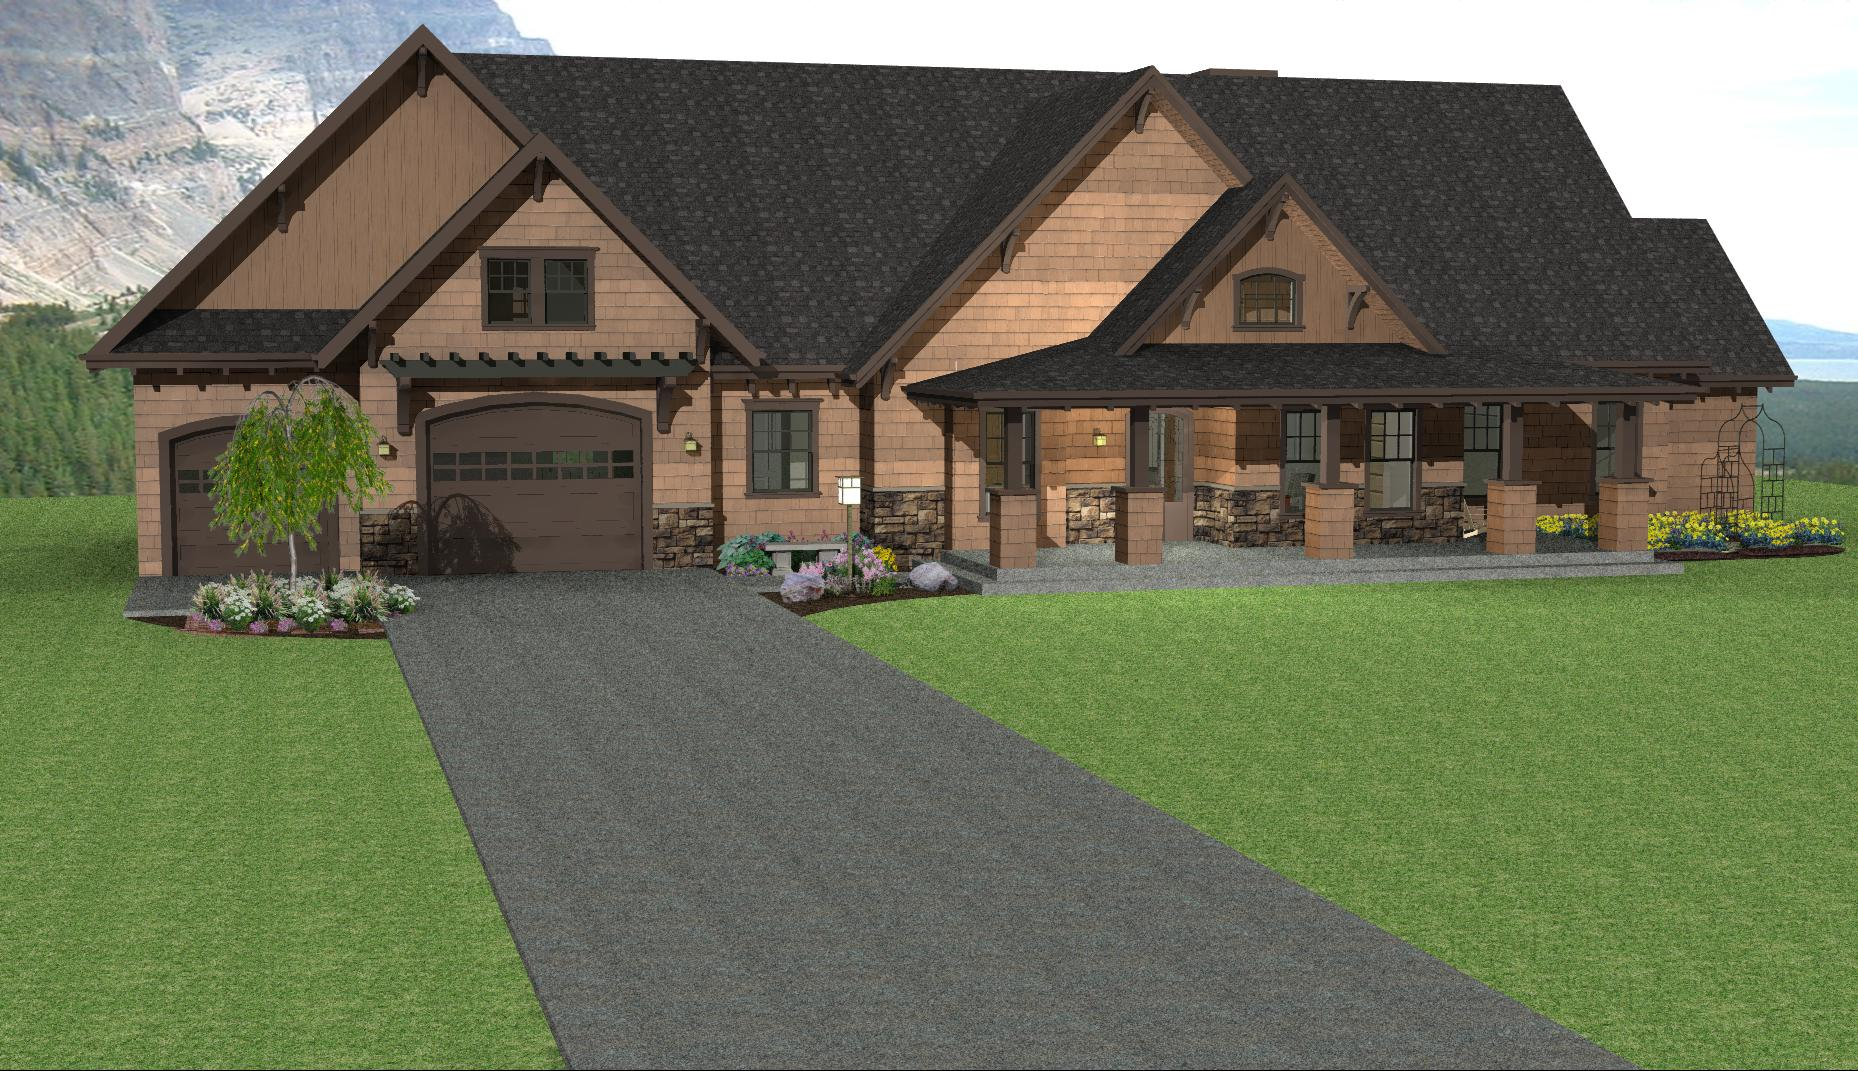 Ranch style home designs find house plans for Ranch style house plans